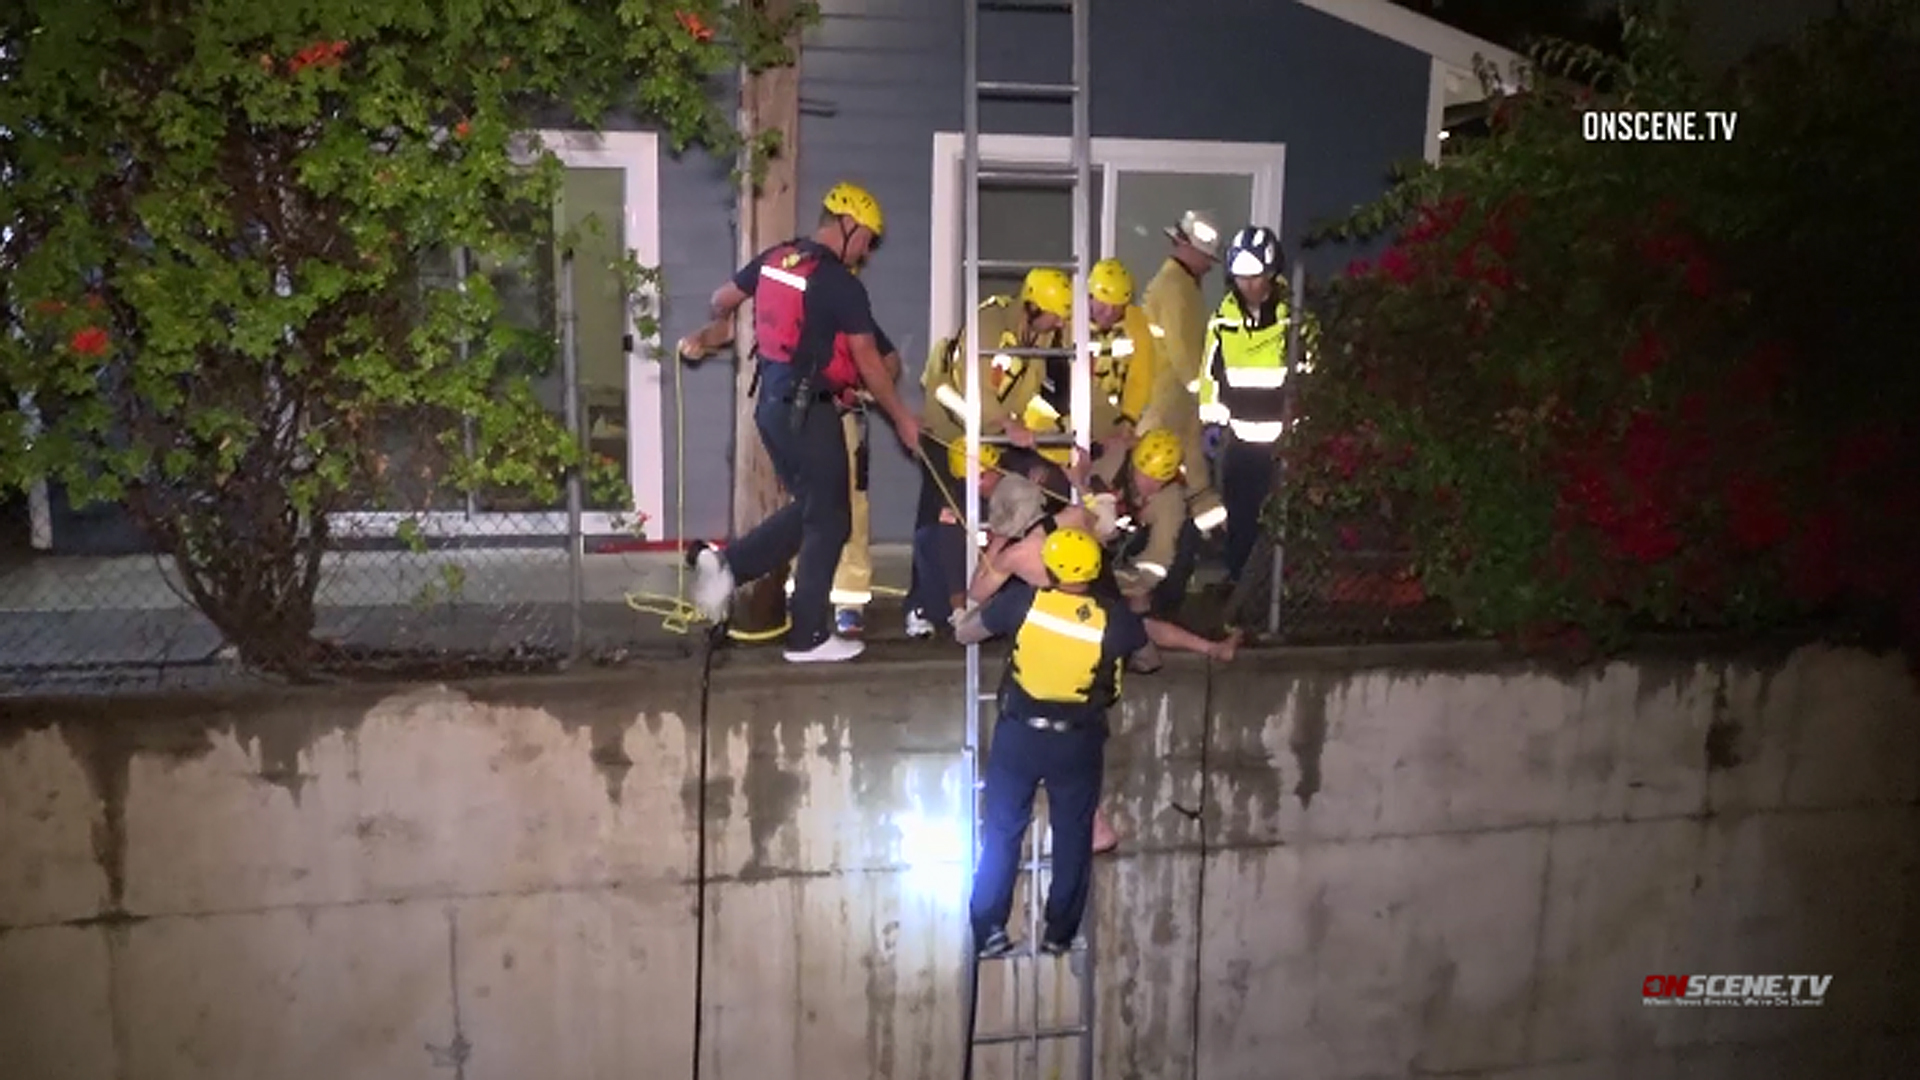 A man is rescued from the rushing waters of a drainage ditch in Fullerton on May 19, 2019. (Credit: OnScene.TV)